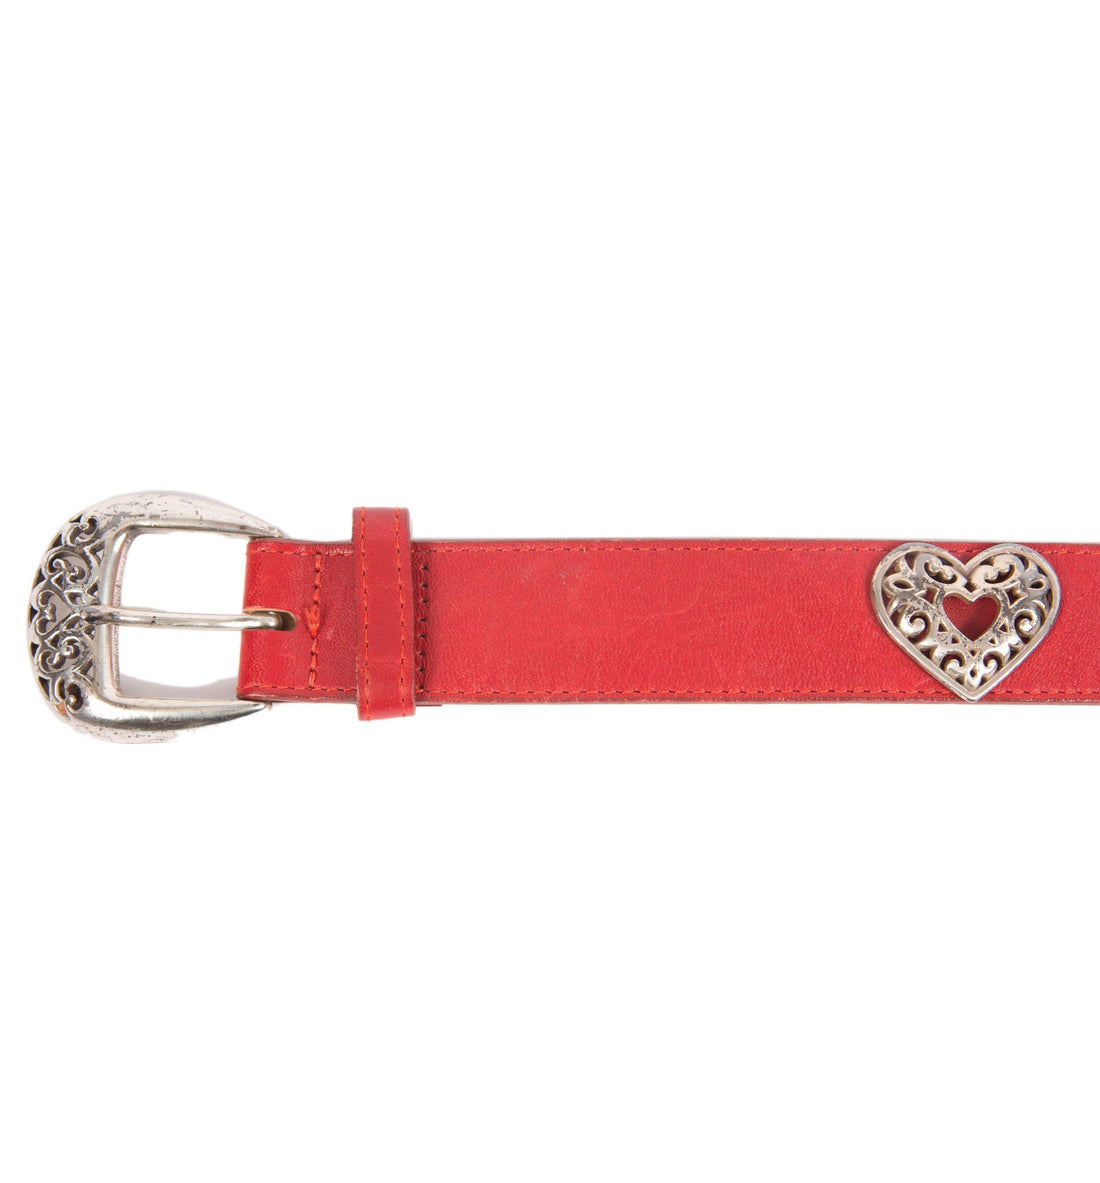 Vintage Brighton Red Leather Heart Metal Belt - Vintage - Iron and Resin